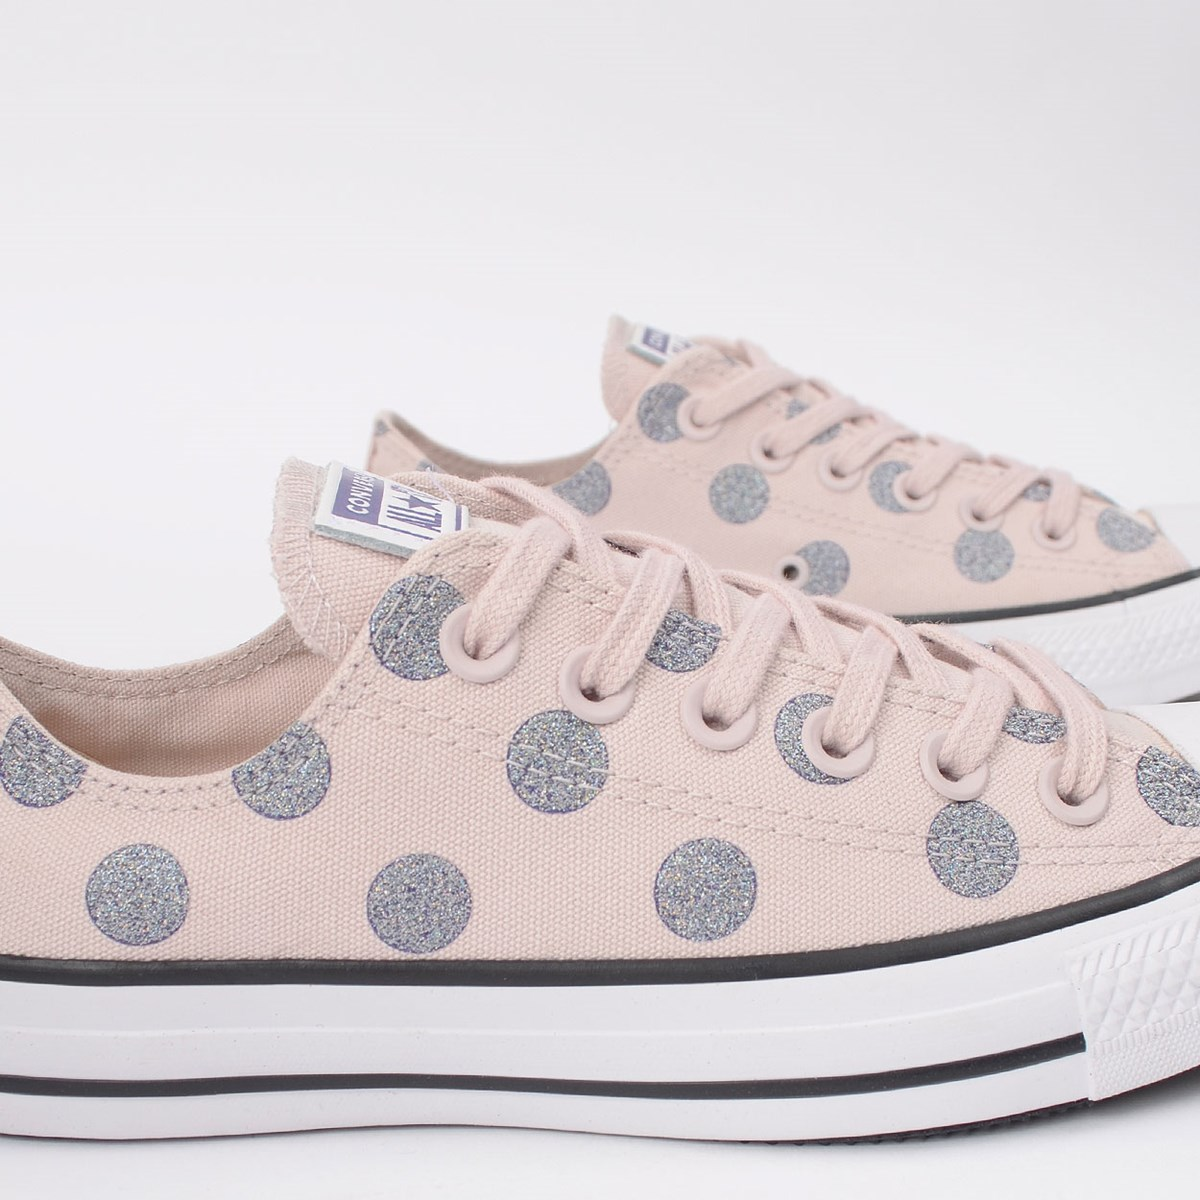 Tênis Converse Chuck Taylor All Star Ox Bege Areia CT15340002